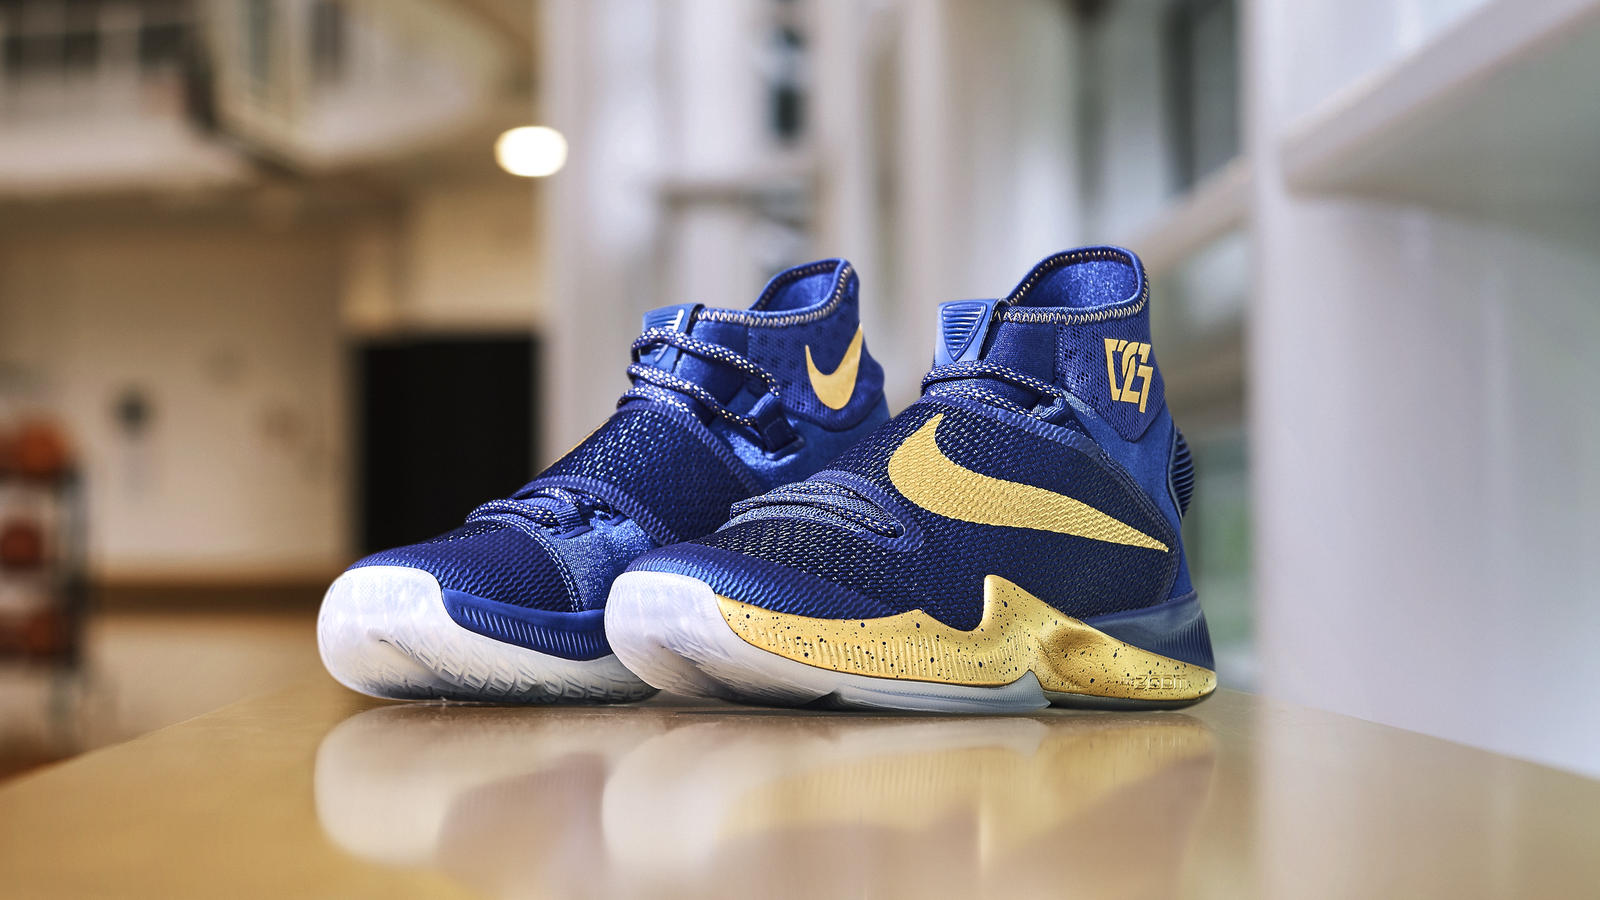 a5ca8ad3422f6 ... switzerland check out draymond greens game 2 pe of the nike hyperrev  2016 1 a3c72 36fce